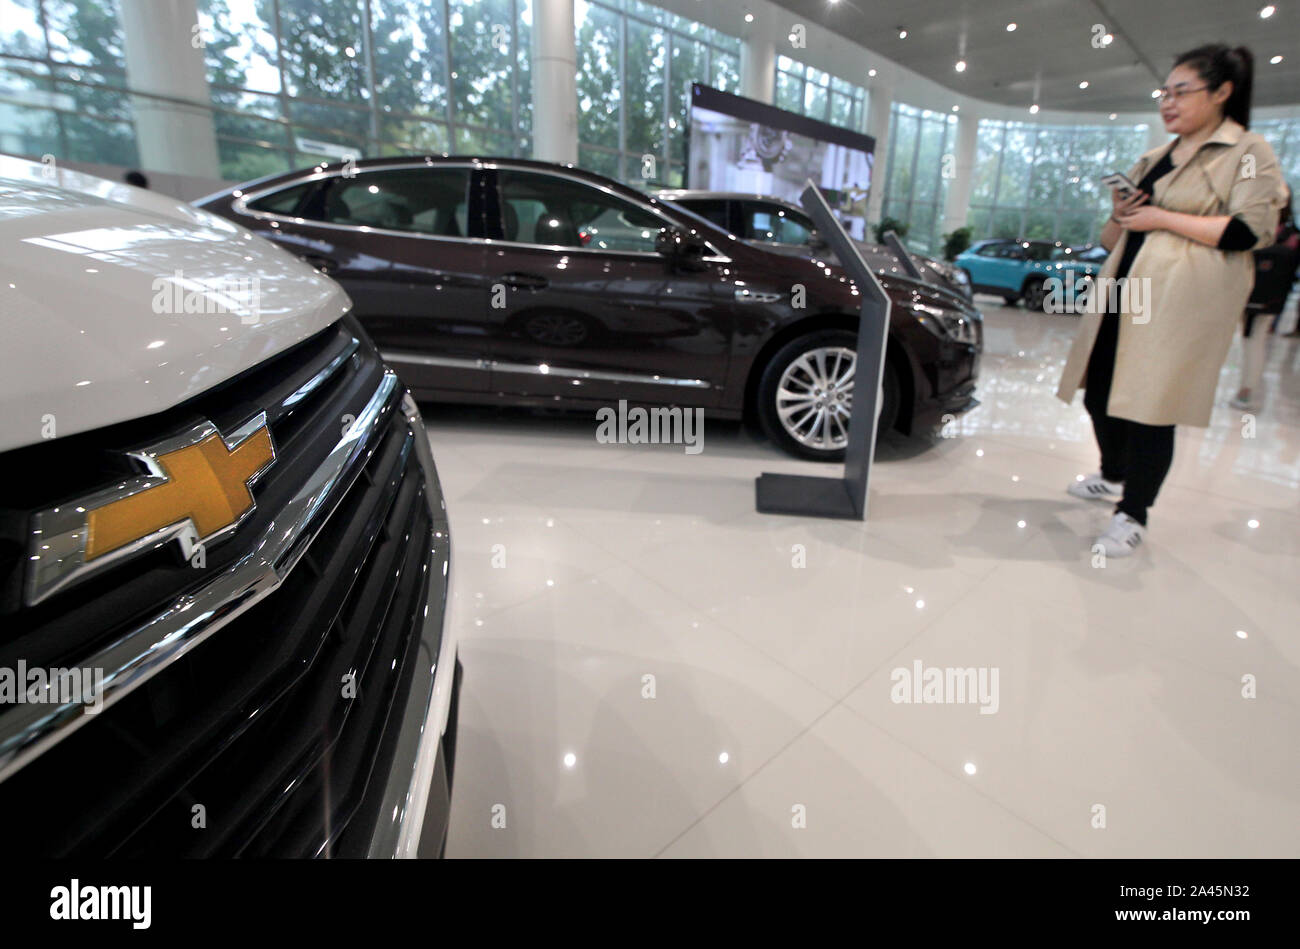 Giant Auto Sales >> Yantai China 12th Oct 2019 Gm Cars Are Displayed As